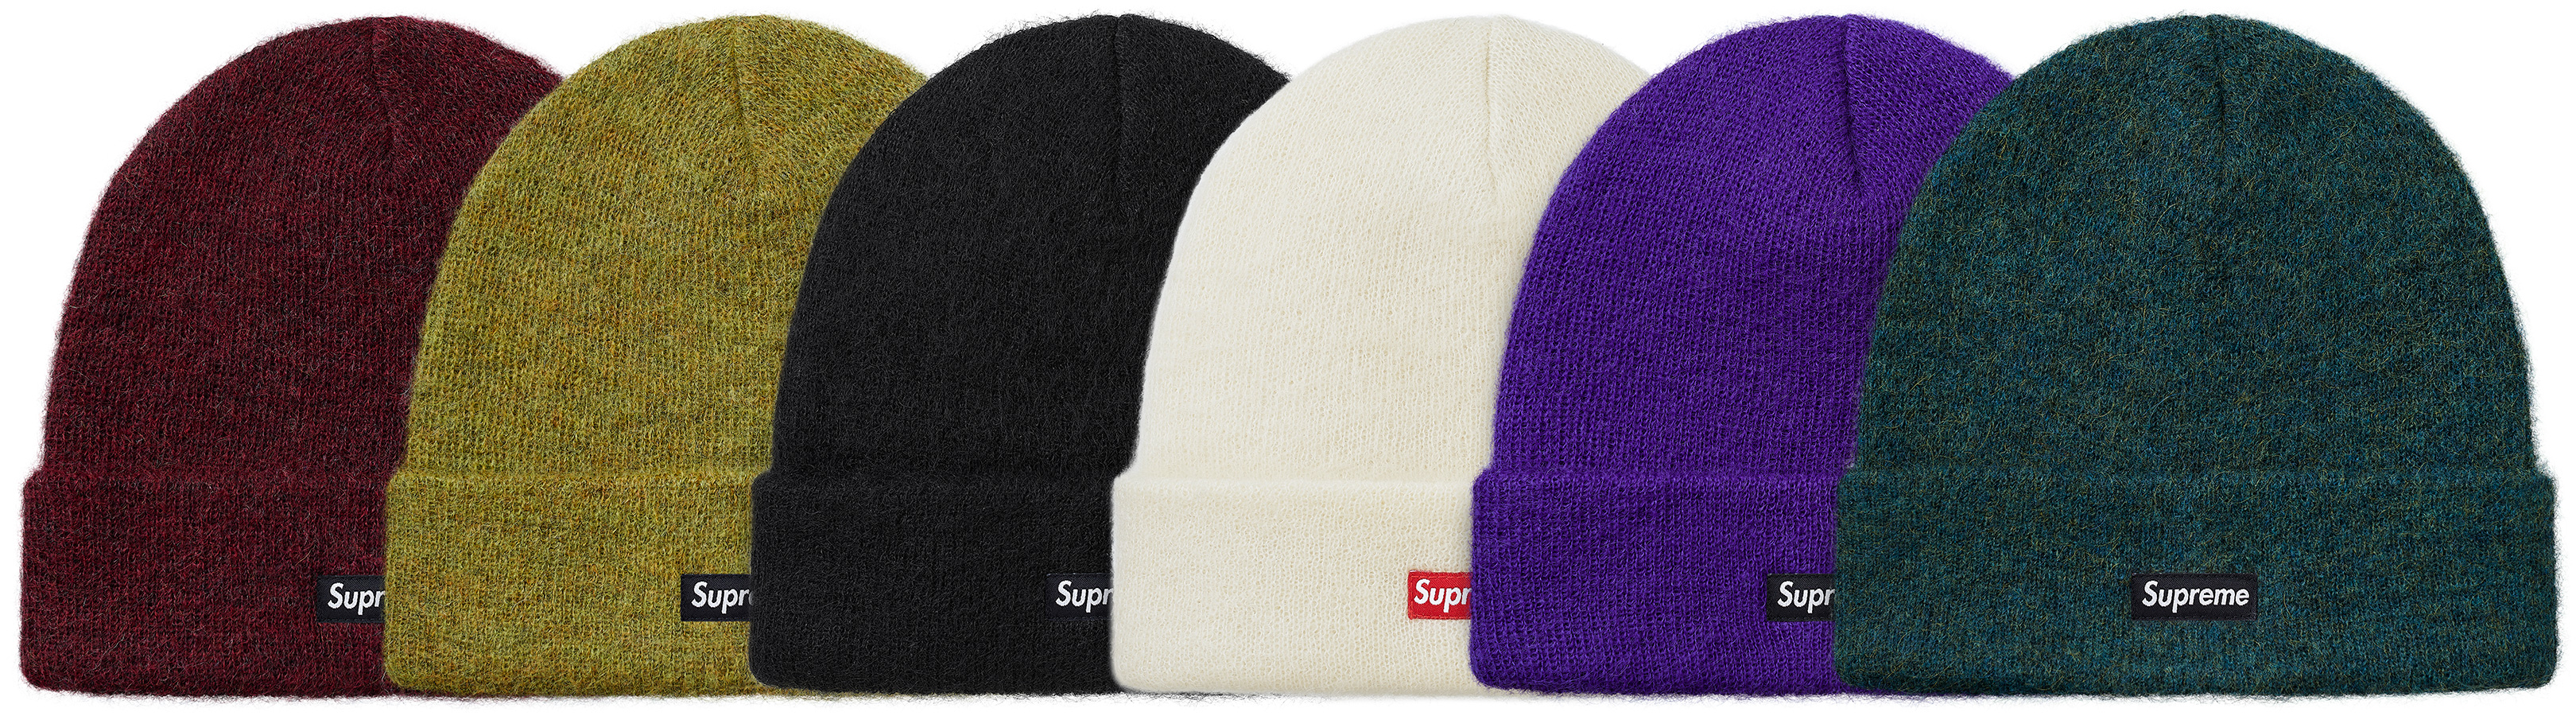 6e532ad5 Herren-Accessoires Supreme FW18 Studded Beanie cap camp logo shirt box hat  tee knit hooded